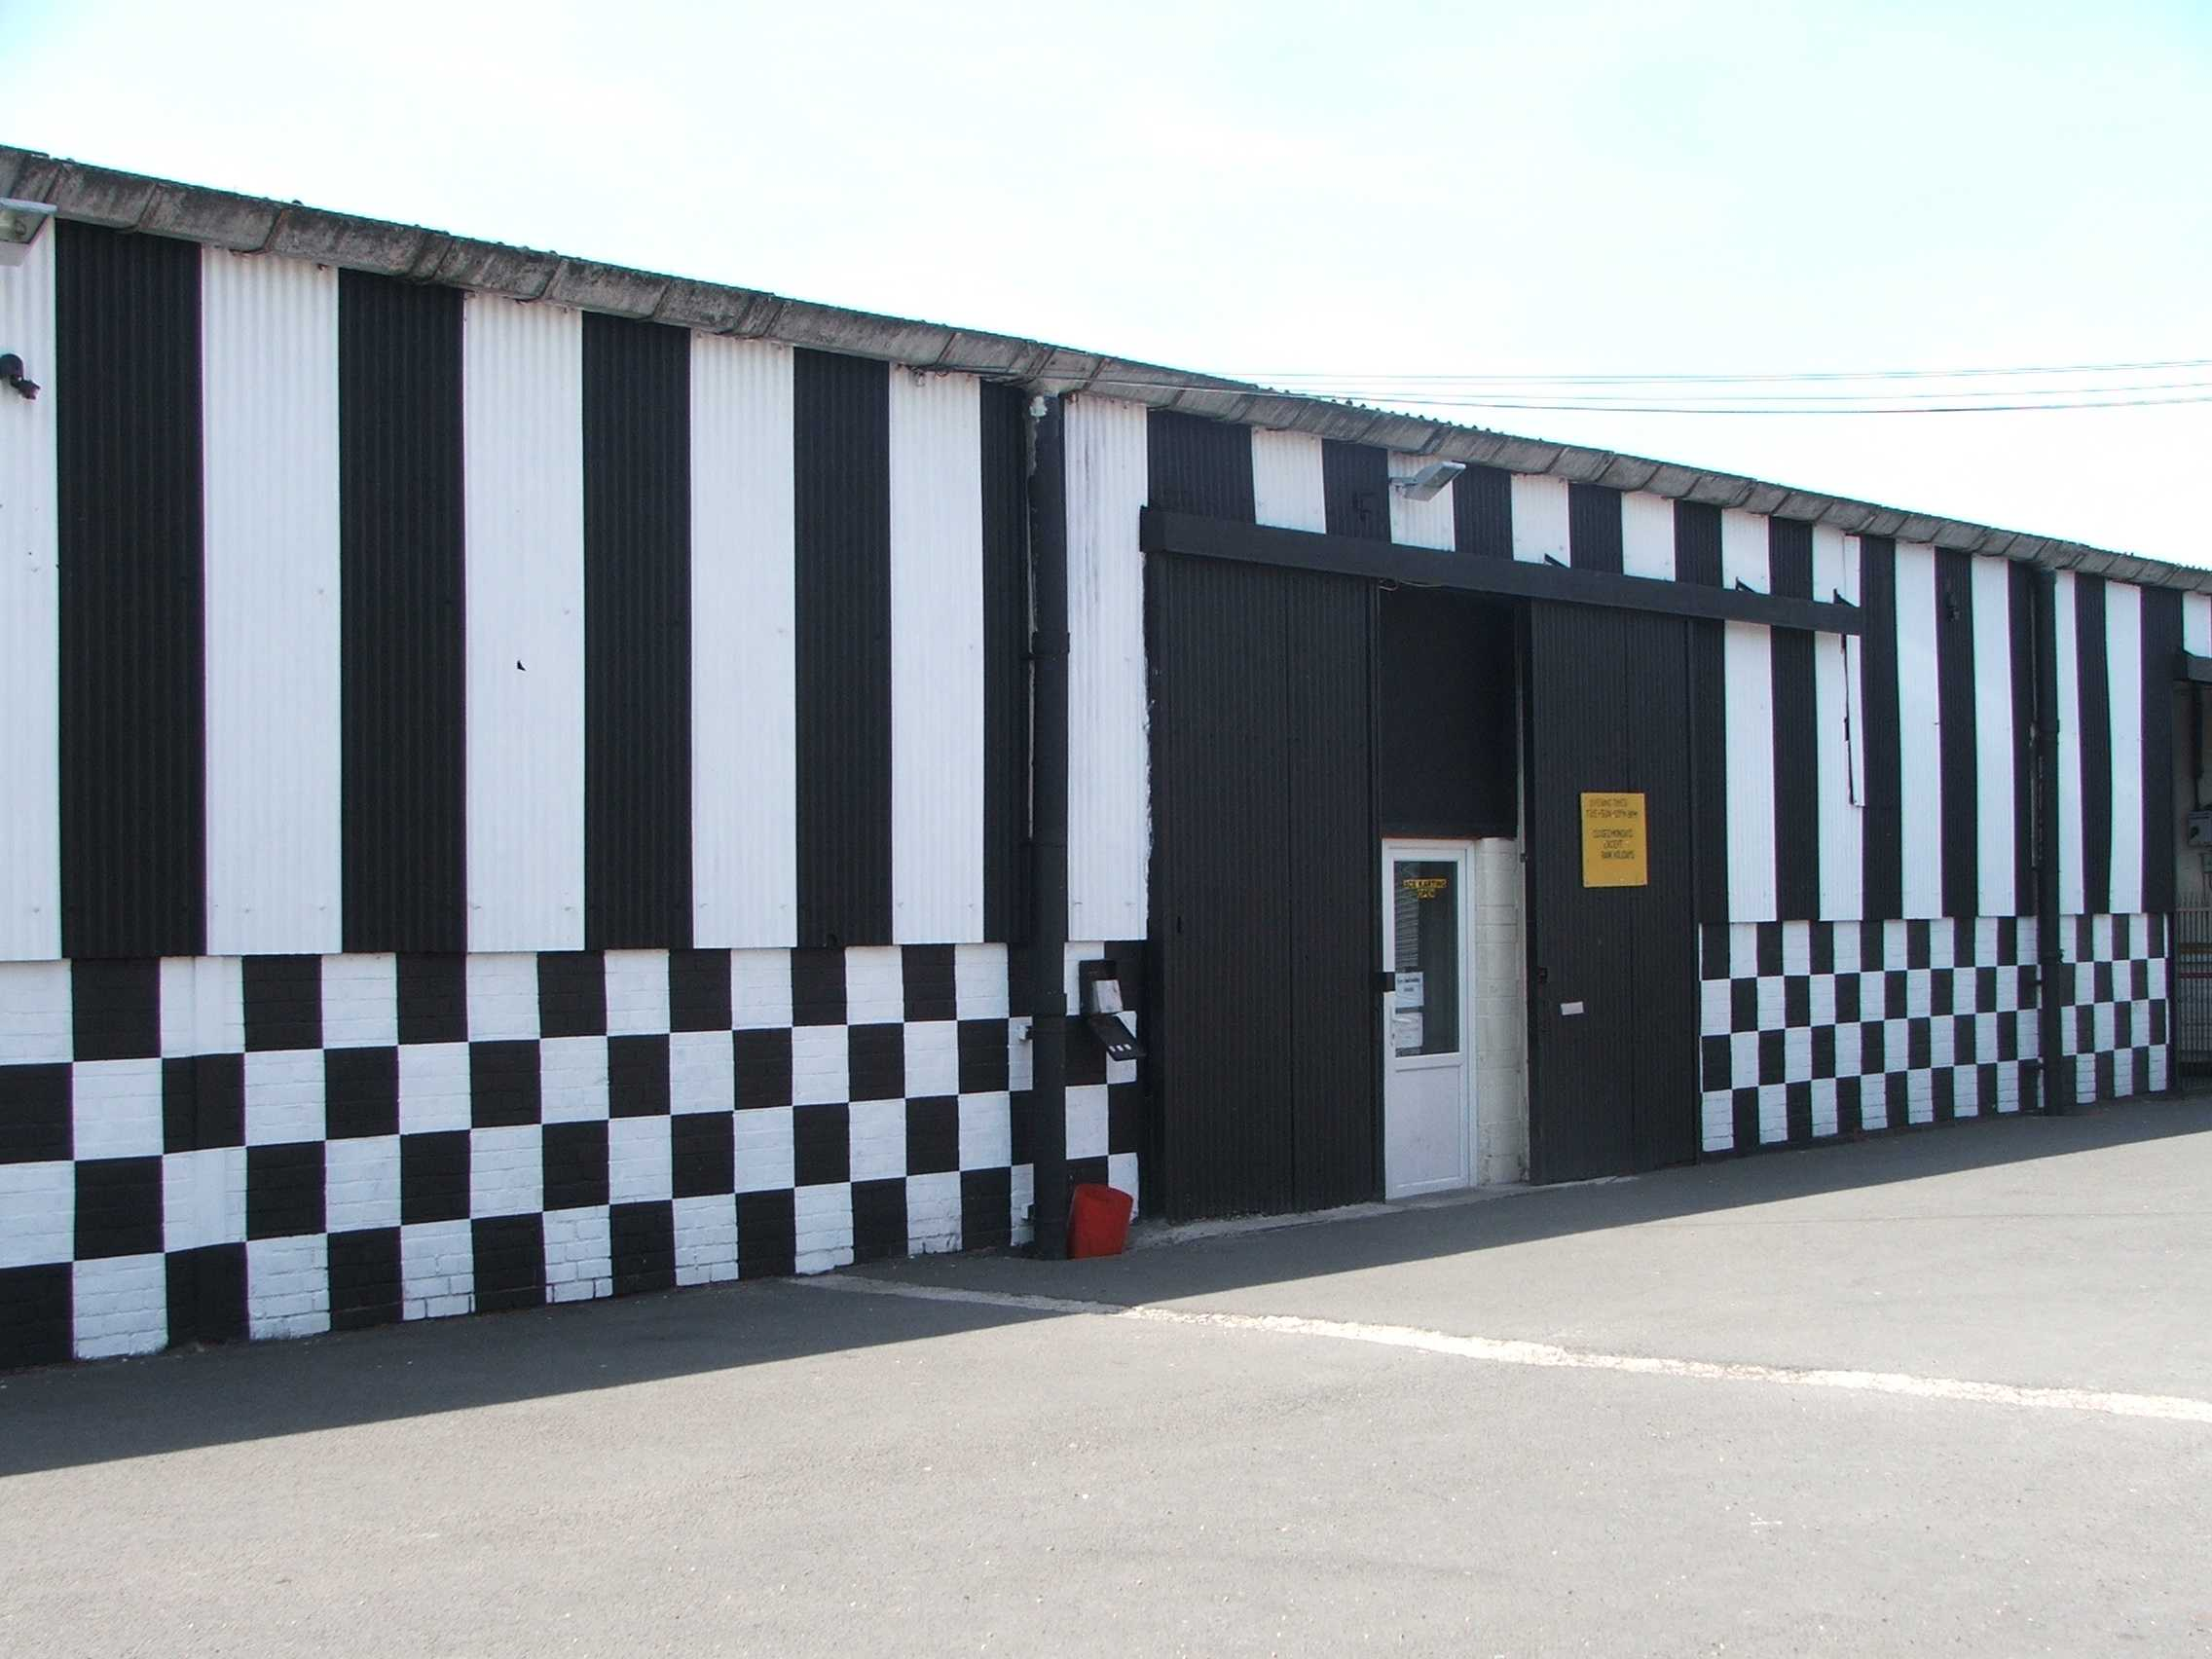 Ace Plus Indoor Karting – Walsall, West Midlands